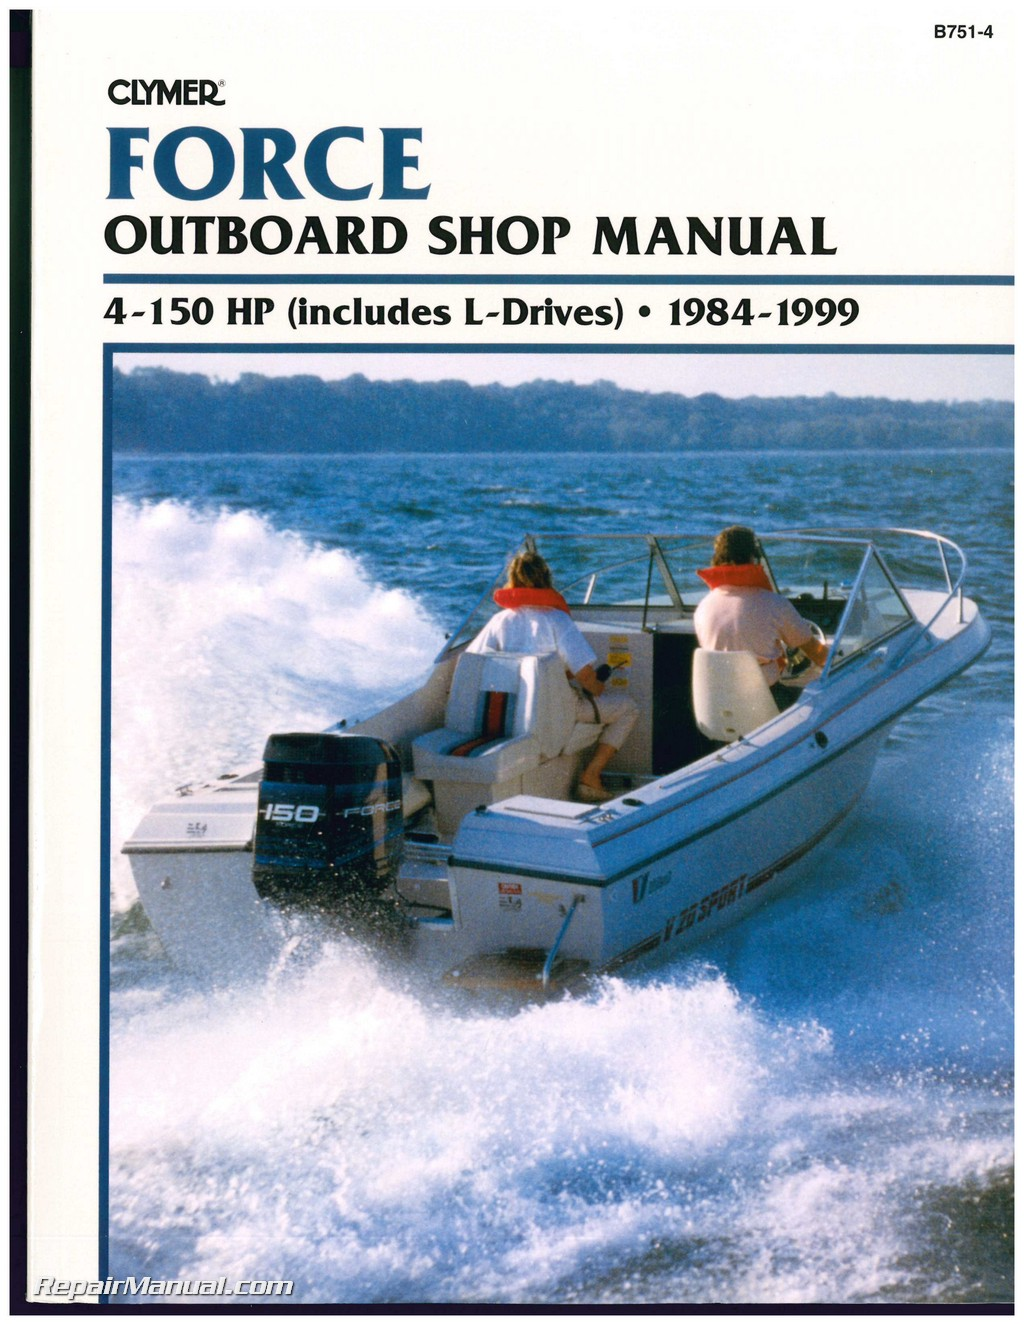 1984 1999 Force 4 150 Hp Outboard Boat Engine Repair Manual 75 Diagram Wiring Schematic